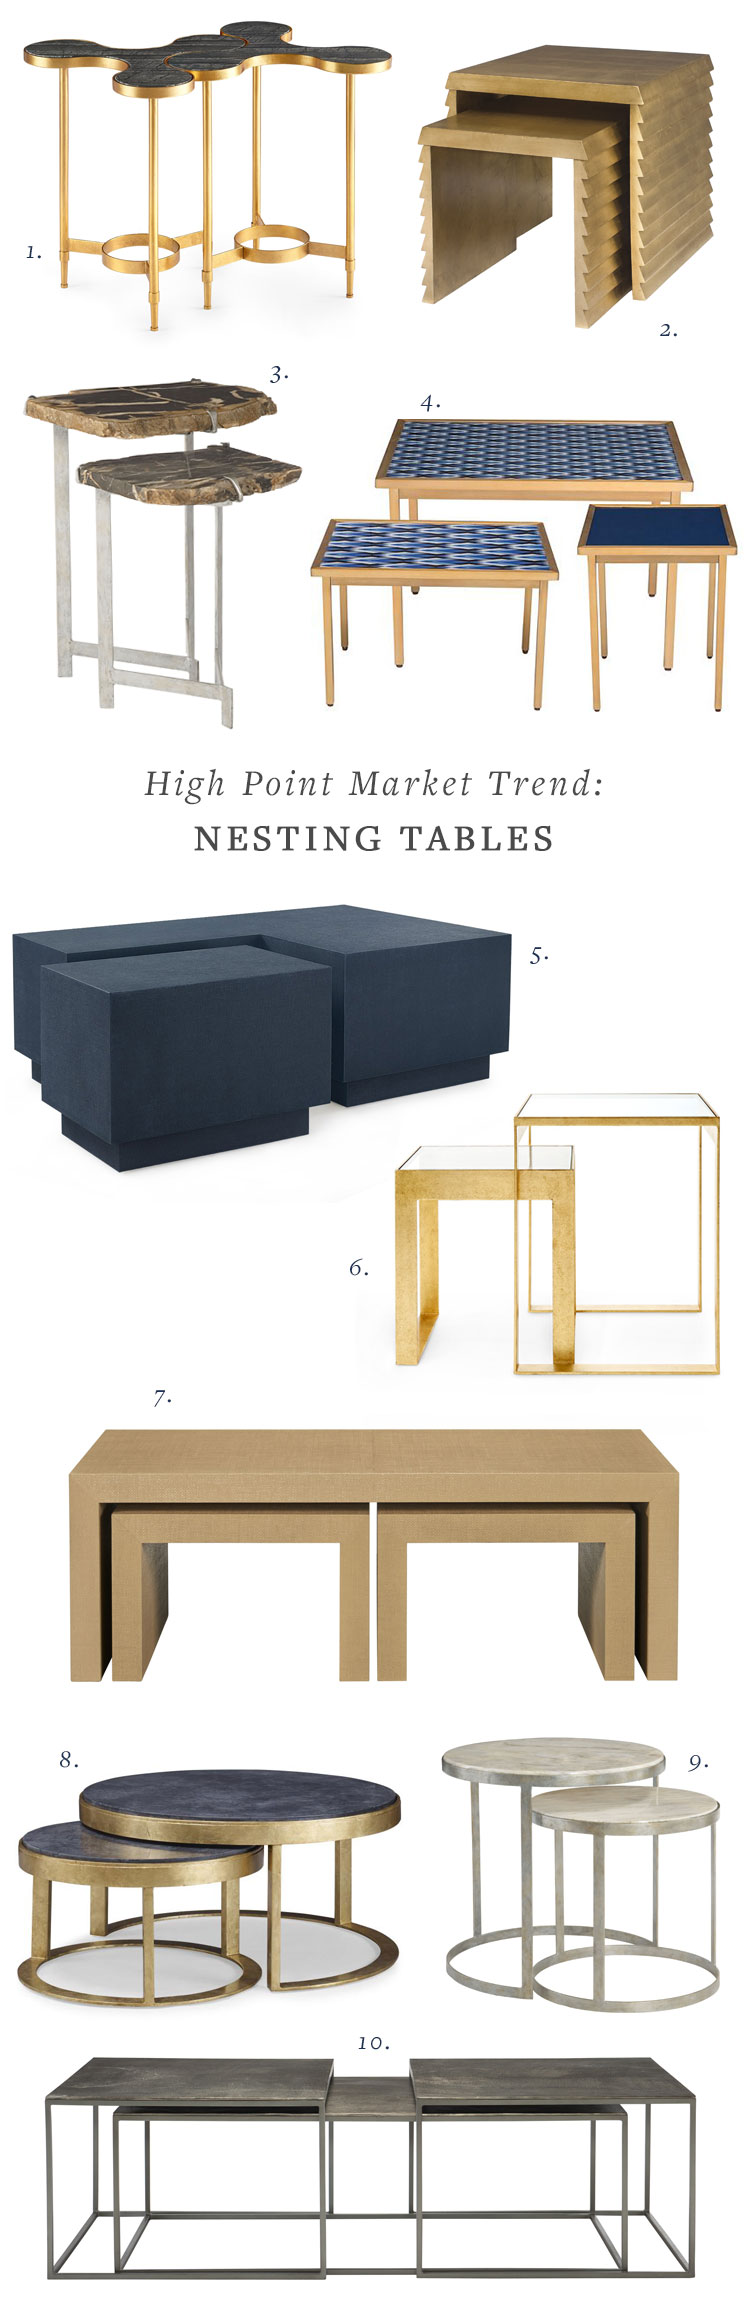 High Point Market interior design and furniture trend for 2018, nesting side tables, cocktail tables, and accent tables, and coffee tables. A great way decorating idea for a small space. #HPMKT #designbloggerstour @HighPointMarket #DesignBloggersTour #HPMKT #ad